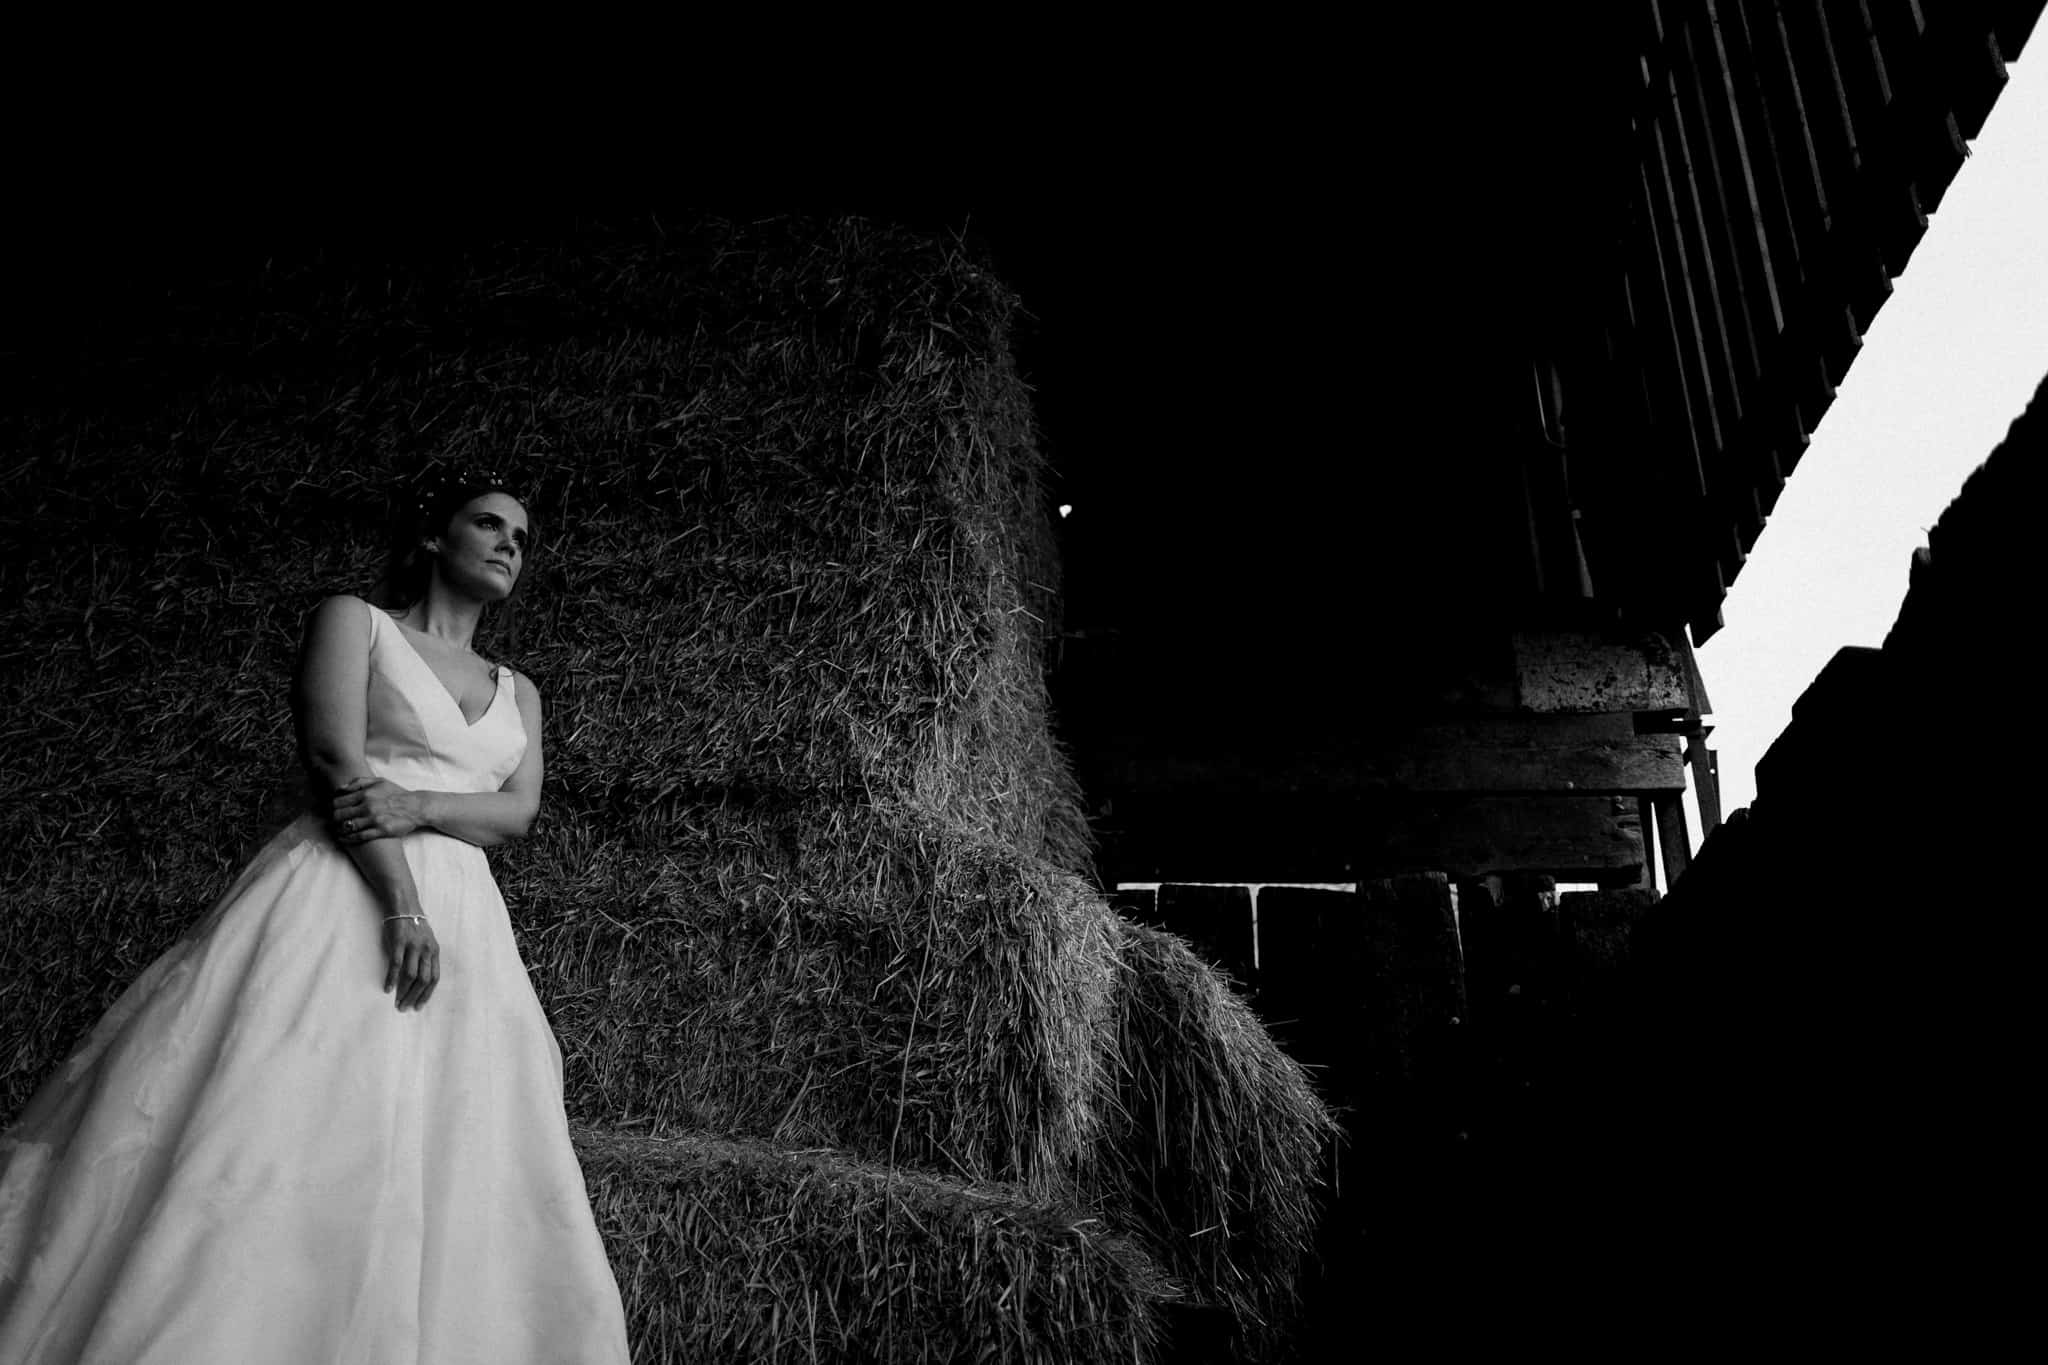 Bridal portrait in cheshire